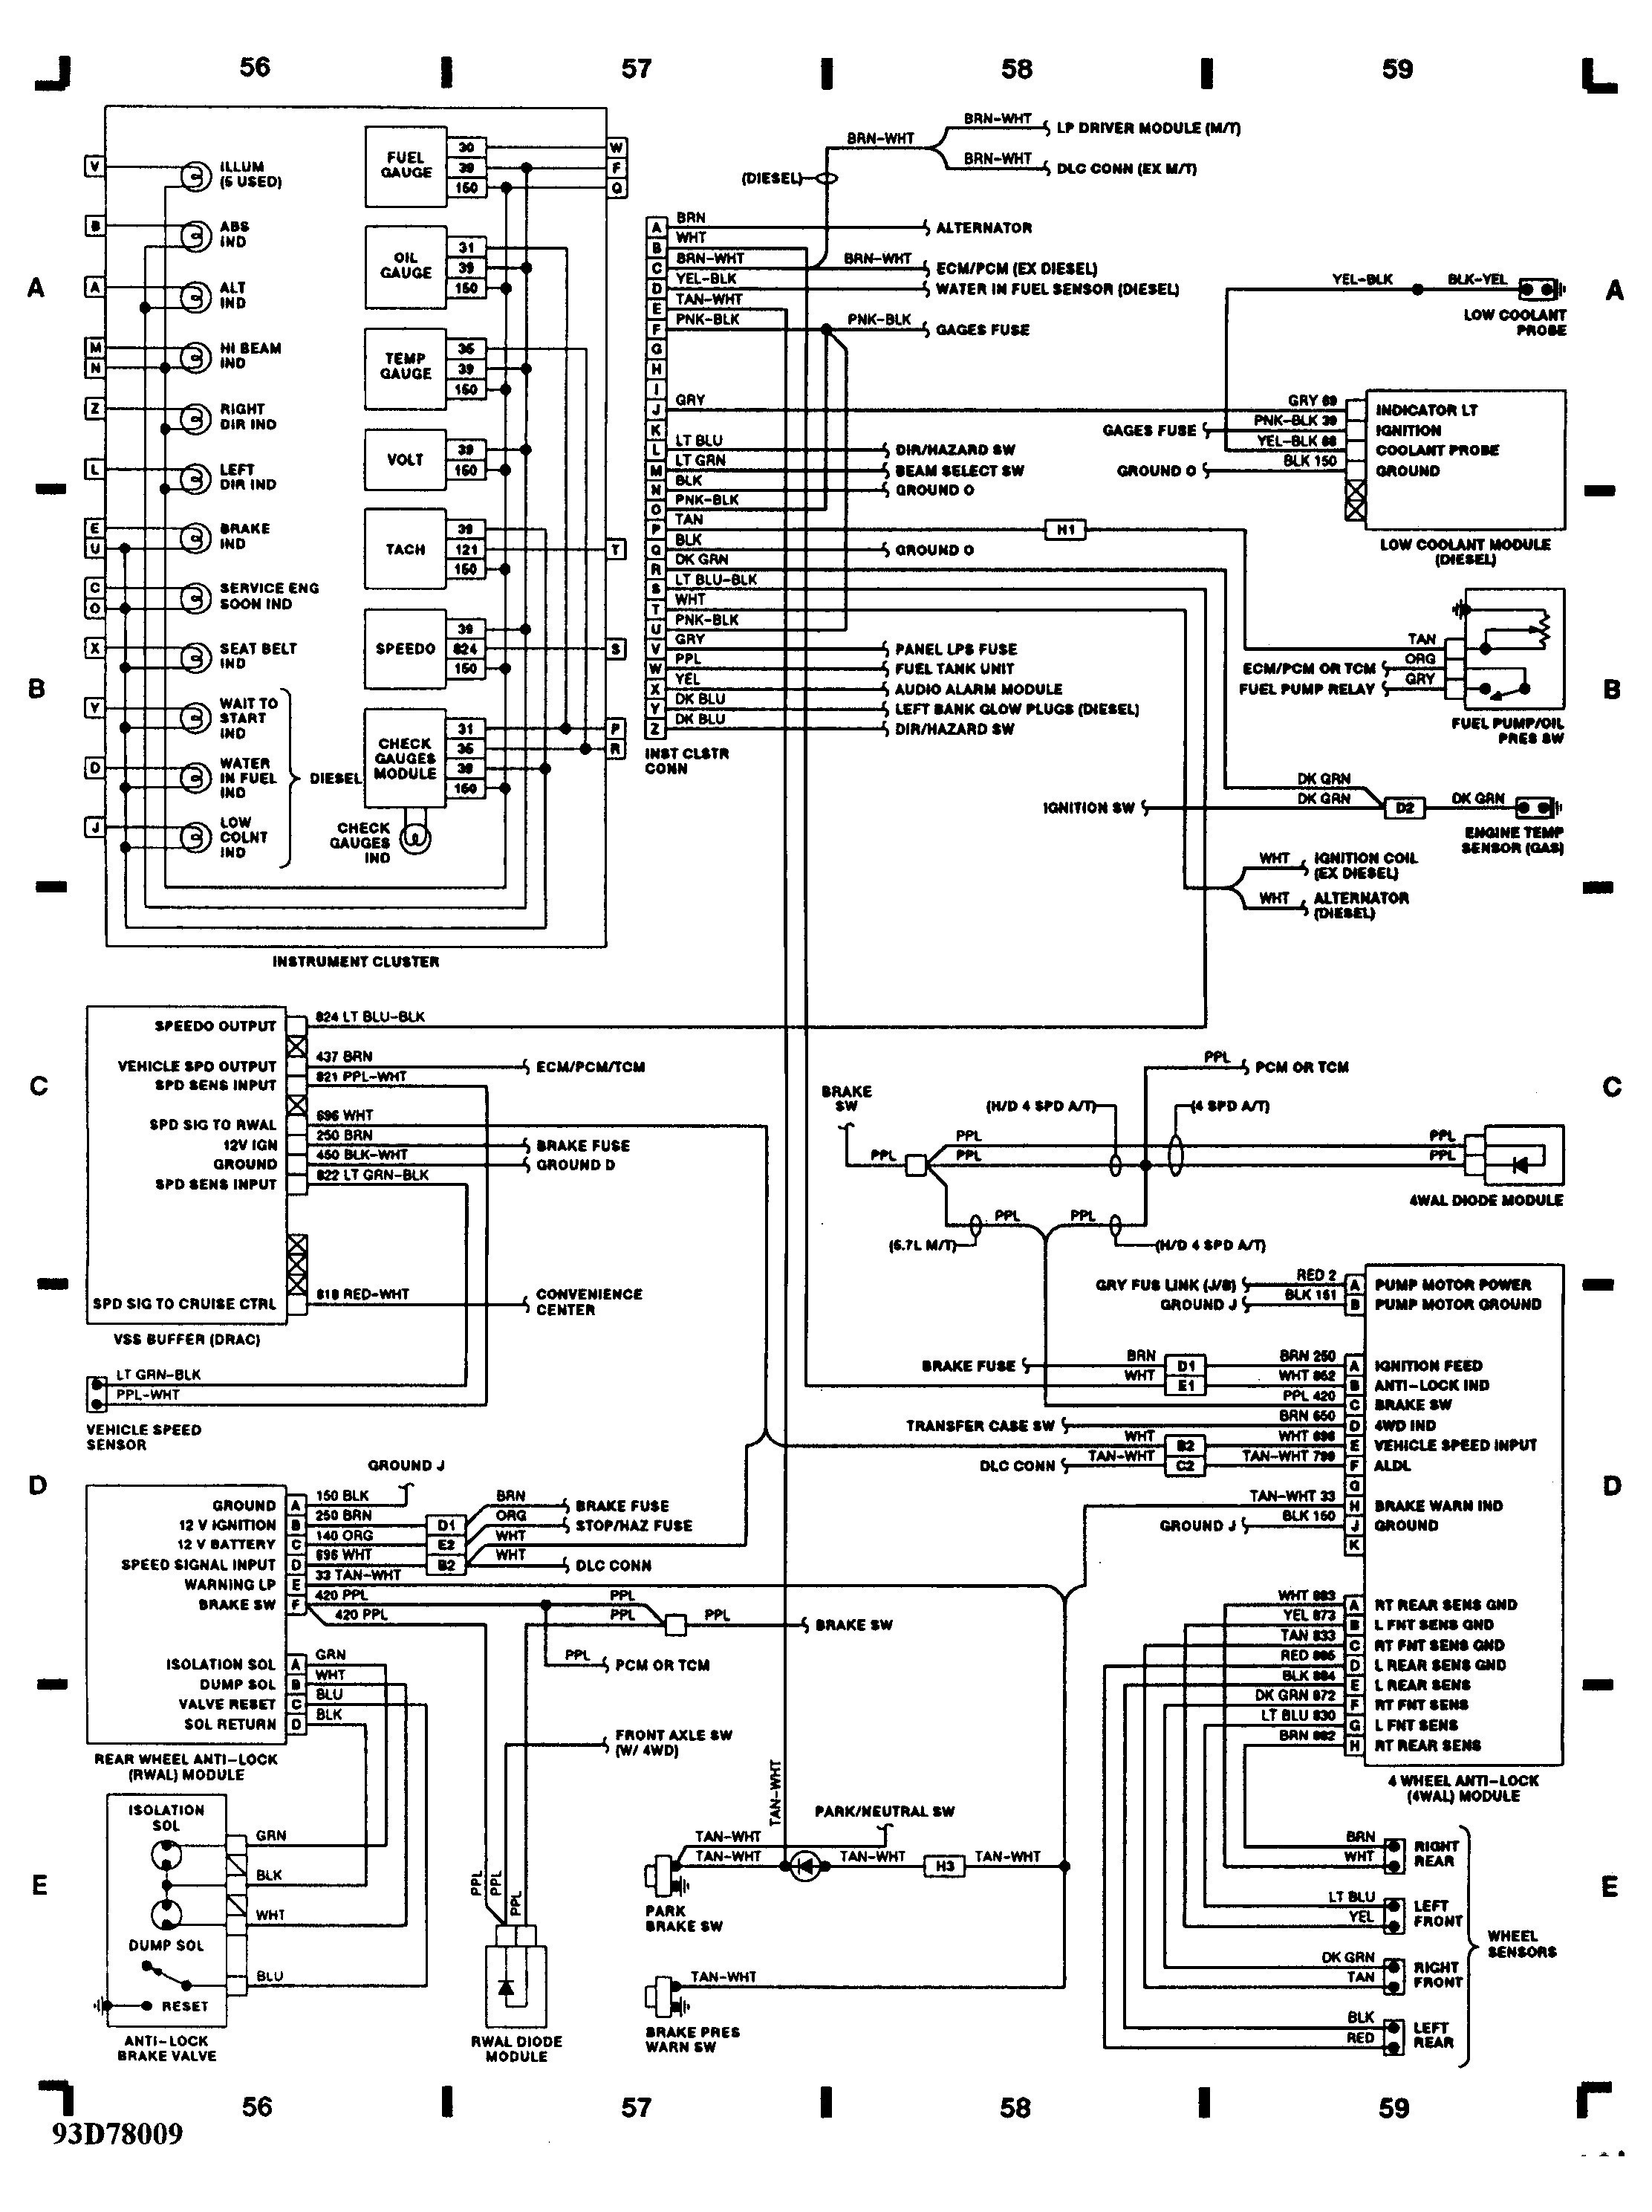 1990 chevy c1500 350 engine wiring diagram  u2022 wiring Chevy Wiring Harness Diagram amc 304 engine diagram suzuki samurai engine wiring diagram jeep 304 carburetor diagram of amc 304 engine diagram